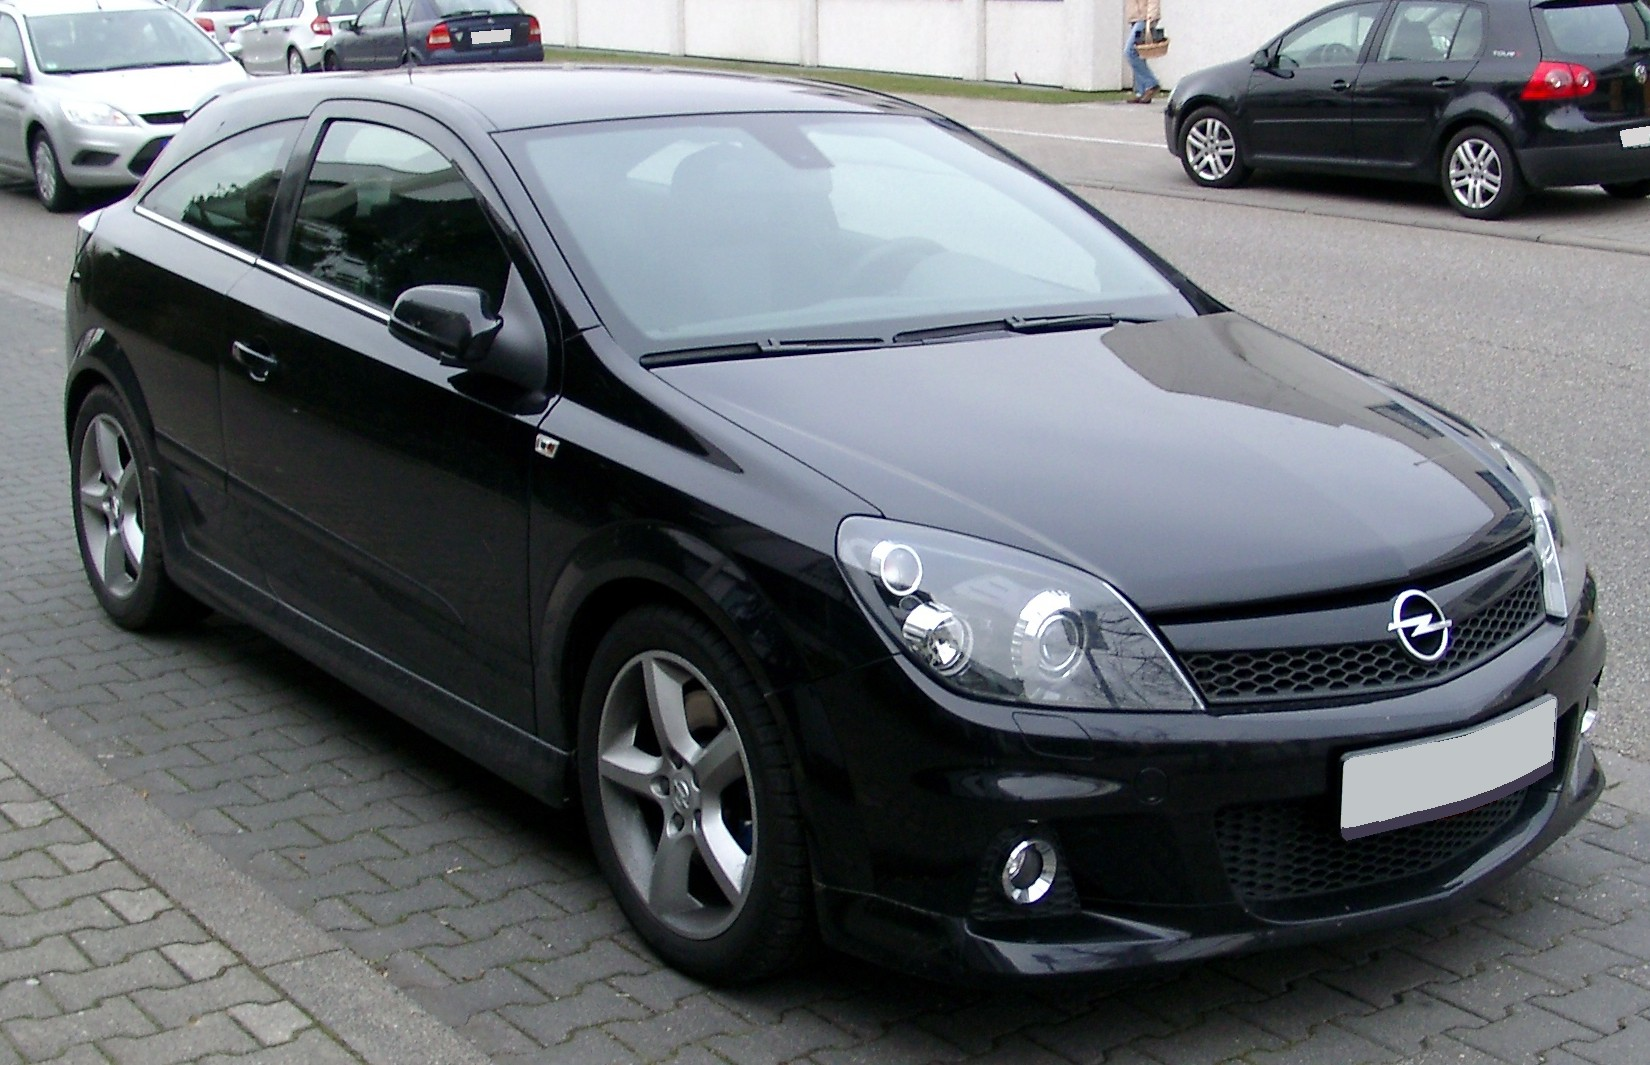 opel astra opc 2008 images galleries with a bite. Black Bedroom Furniture Sets. Home Design Ideas